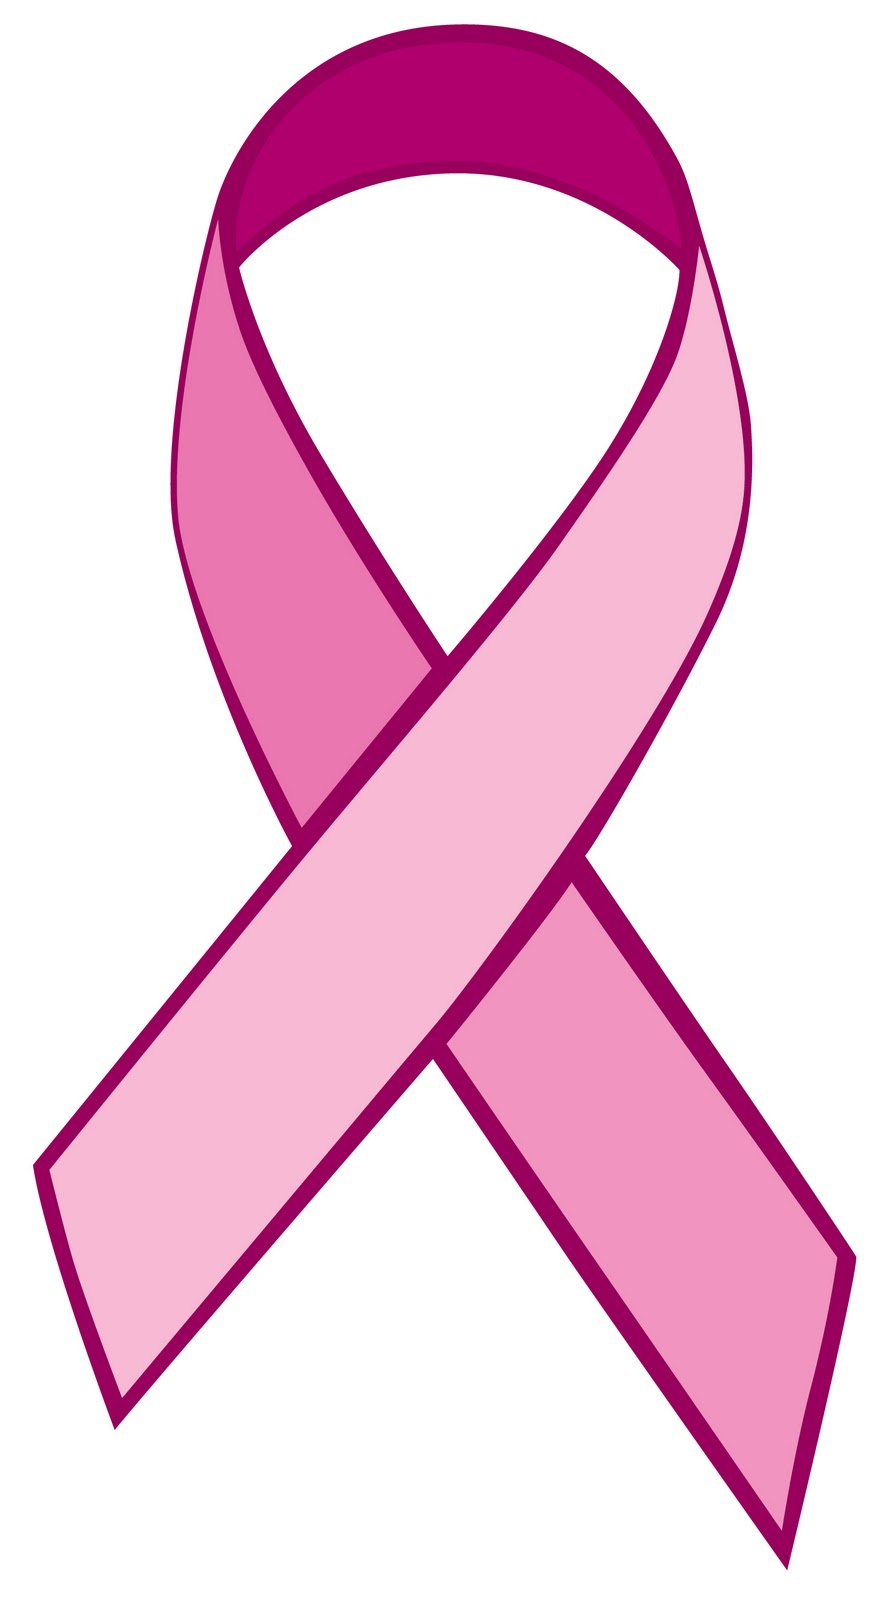 889x1600 Cancer Ribbon Pink Ribbon Breast Cancer Clip Art Outline